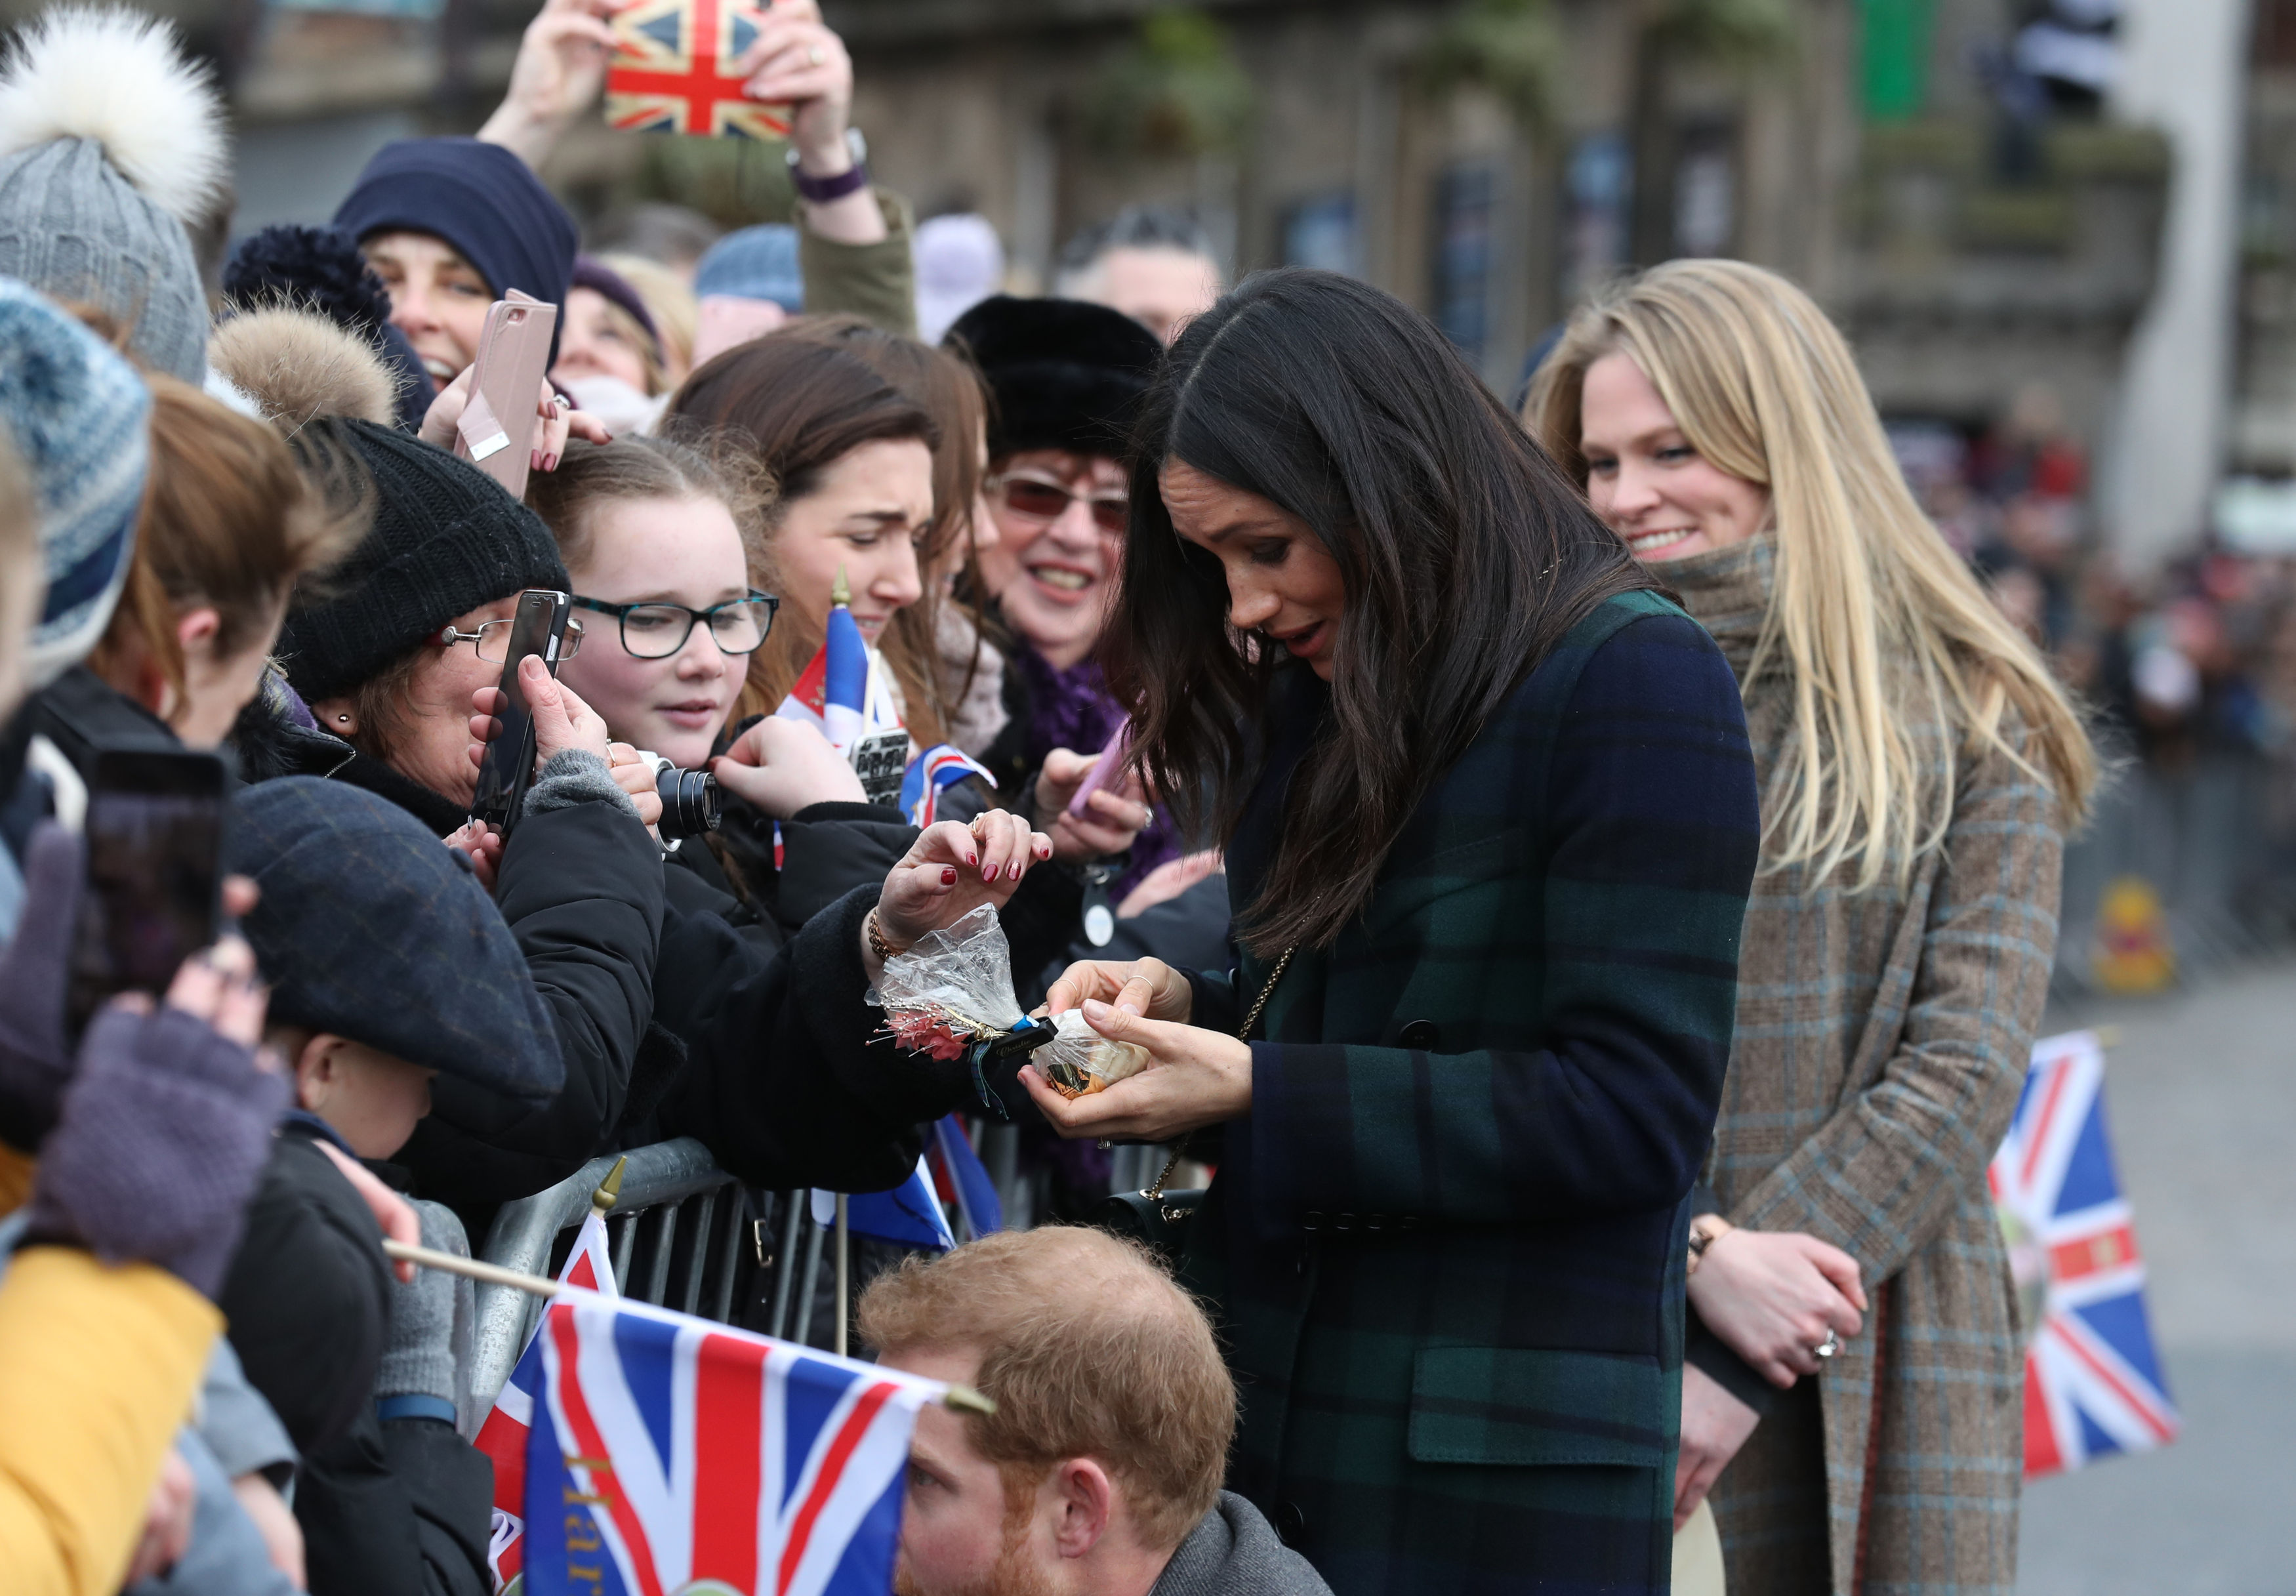 Meghan Markle in a tartan coat during a walkabout (Andrew Milligan/PA)